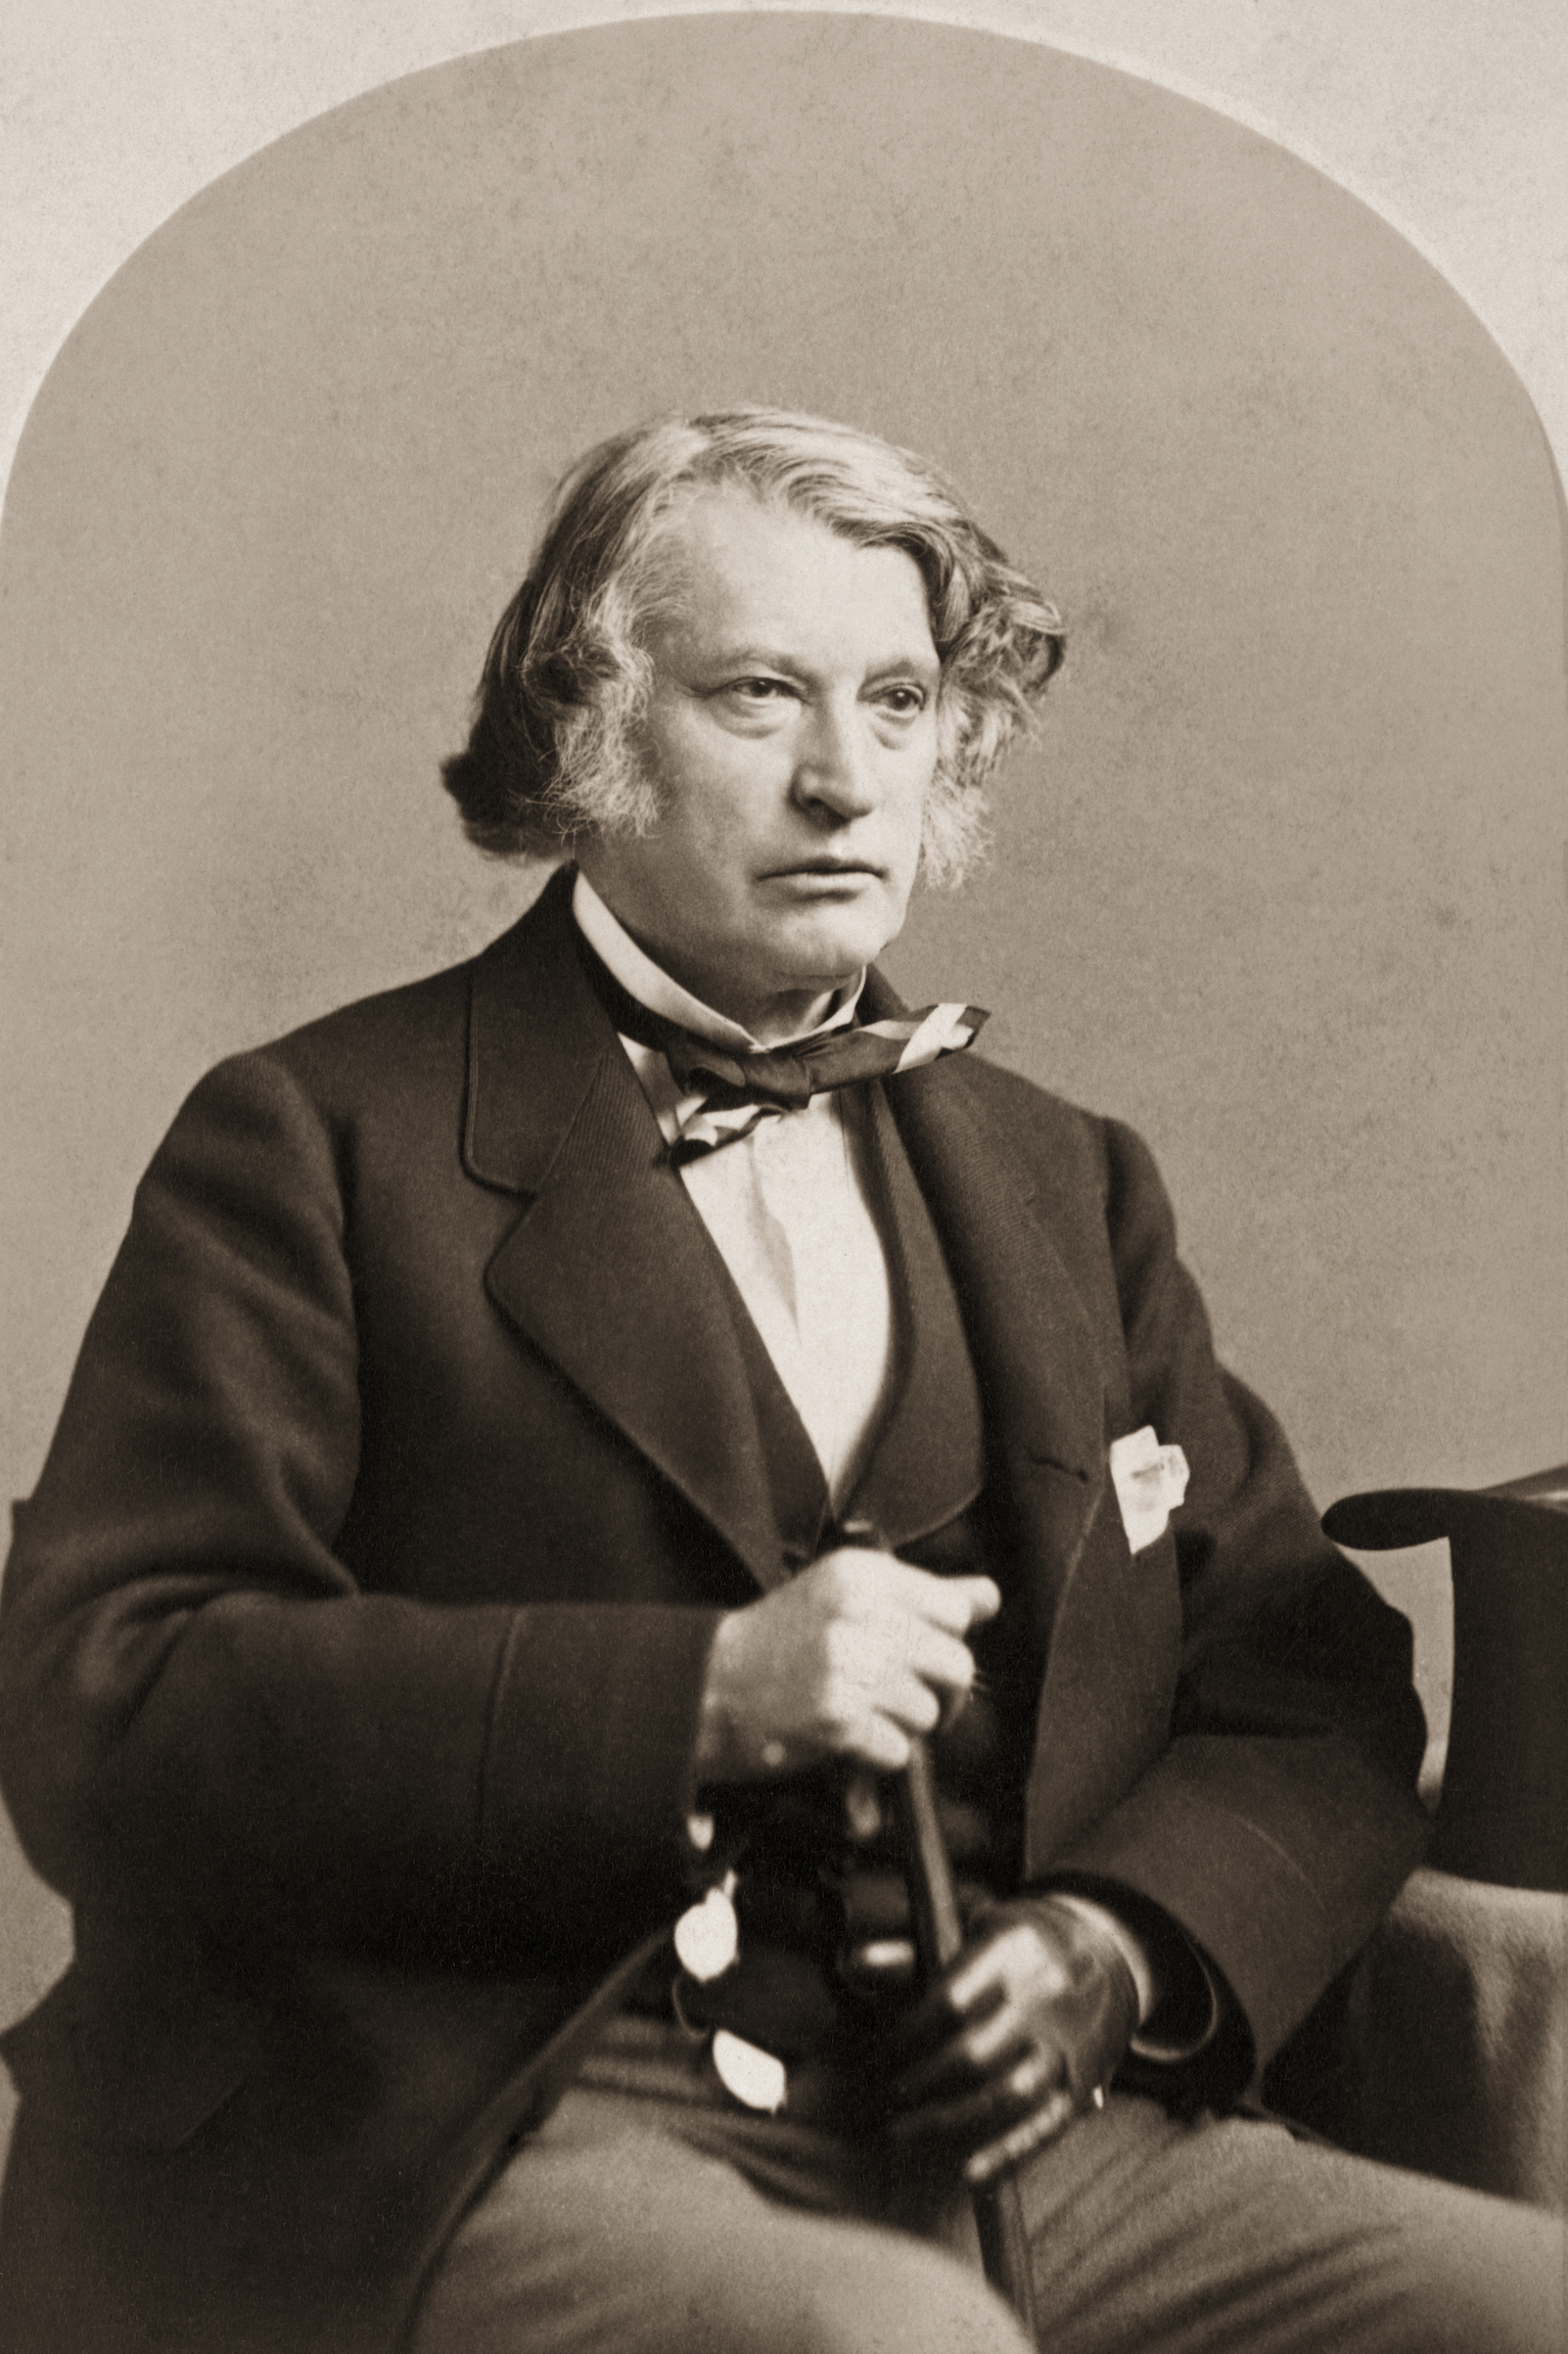 Charles Sumner seated with cane, circa early 1870's.